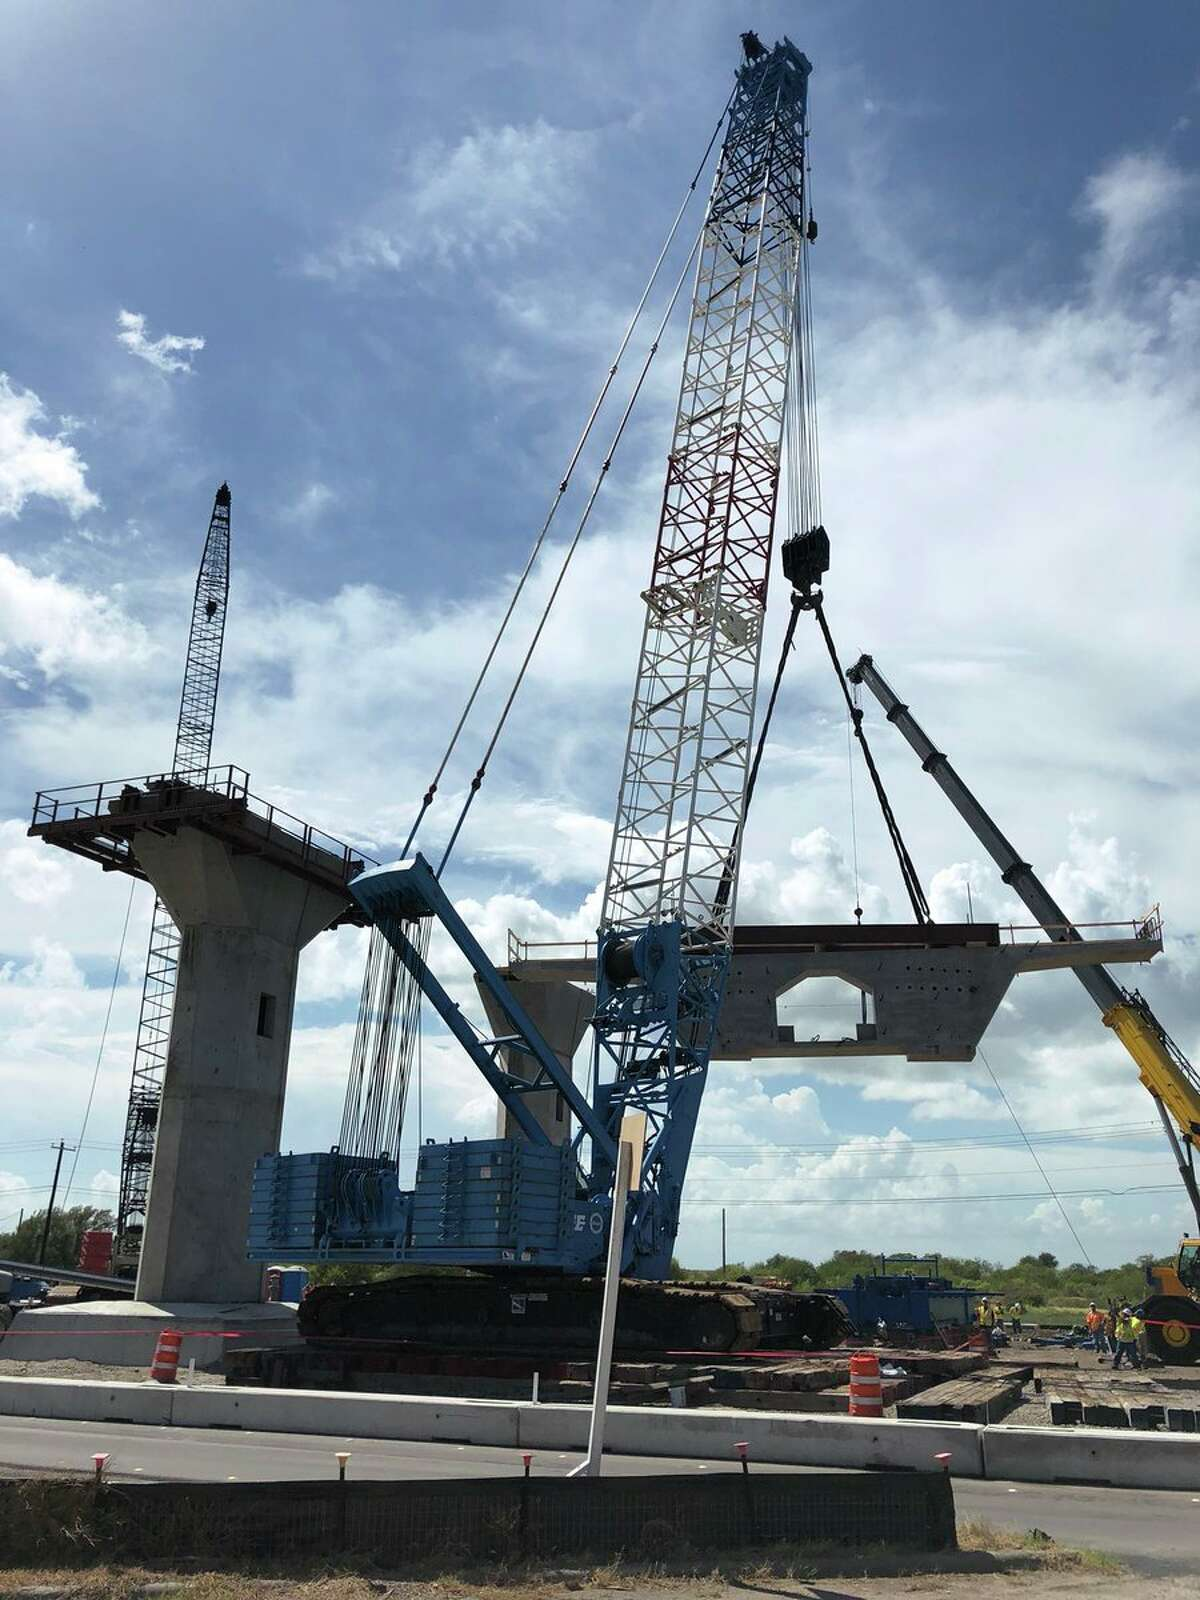 The new Harbor Bridge is beginning to take shape in Corpus Christi. It's expected to be completed in 2020.